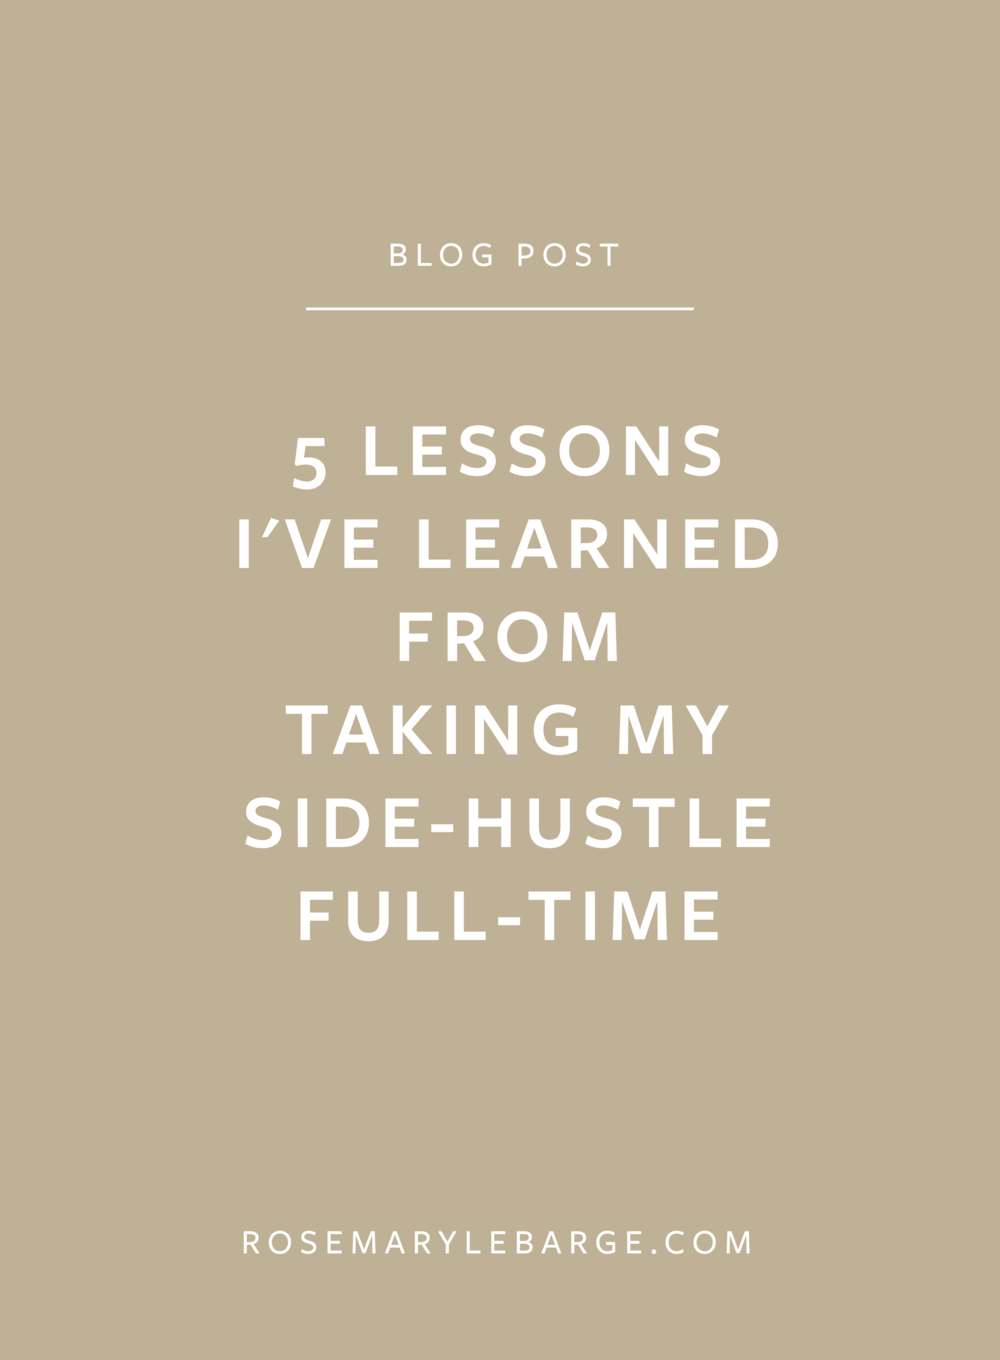 5 Lessons I've learned From Taking My Side-Hustle Full-Time